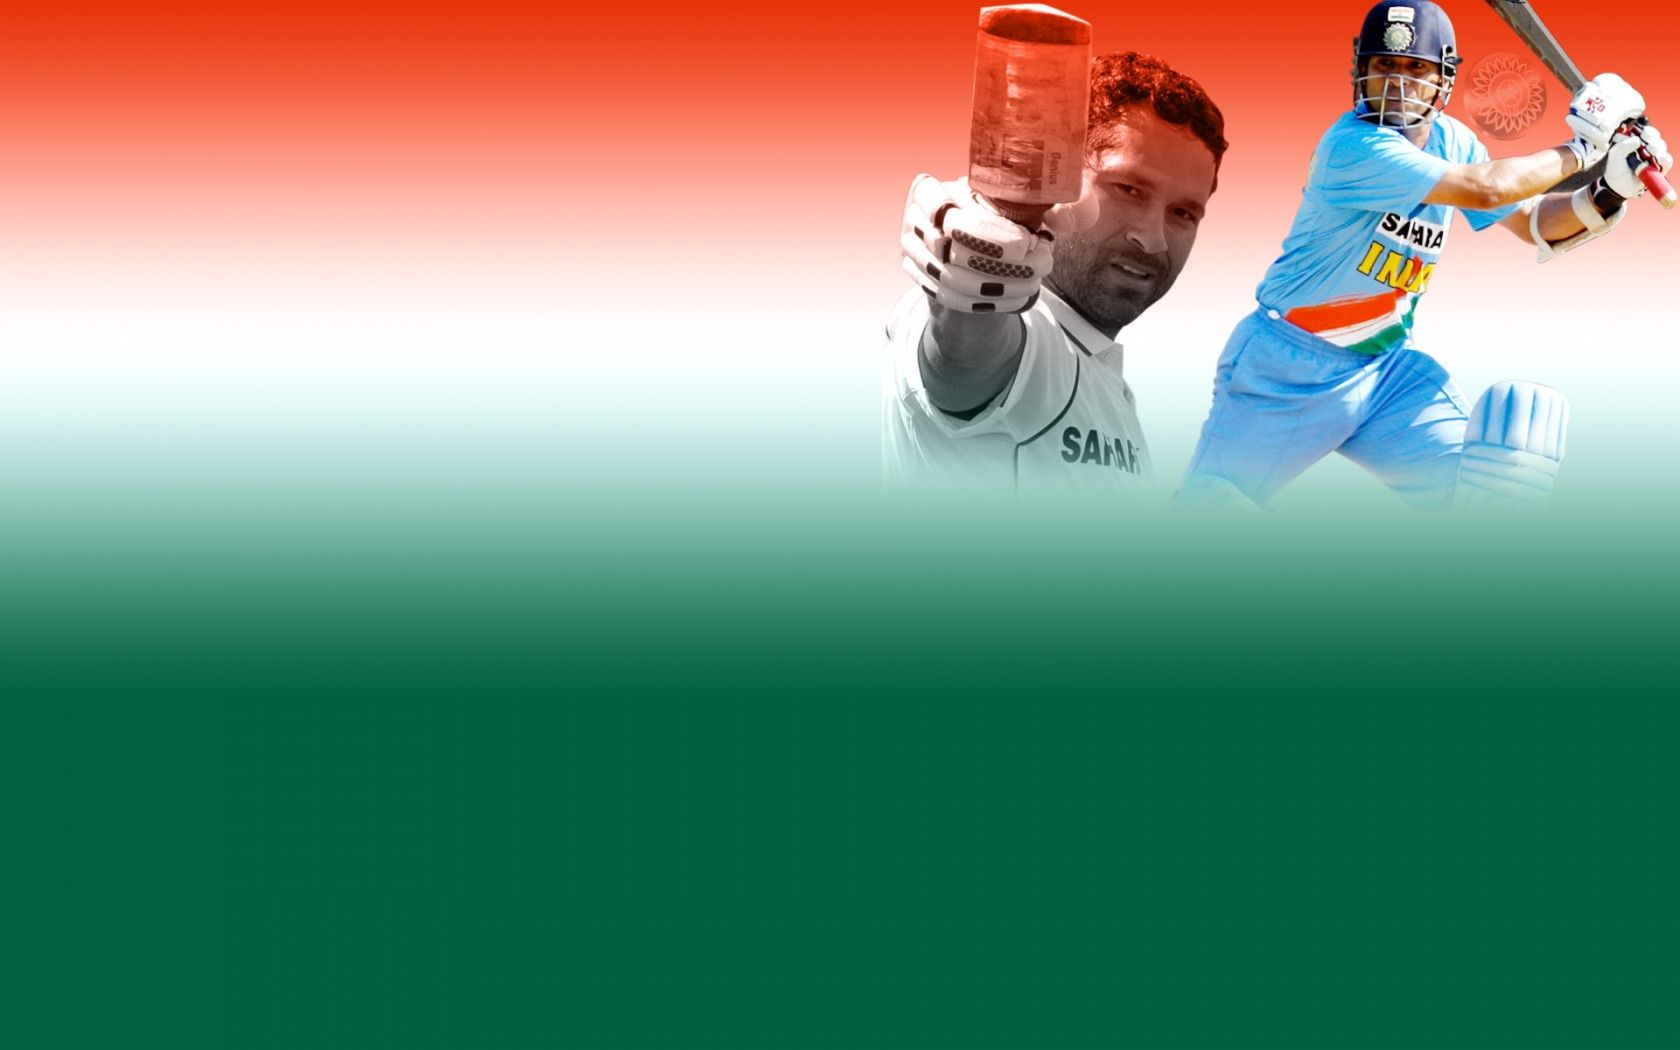 sachin tendulkar wallpaper #50615 - resolution 1680x1050 px | sachin